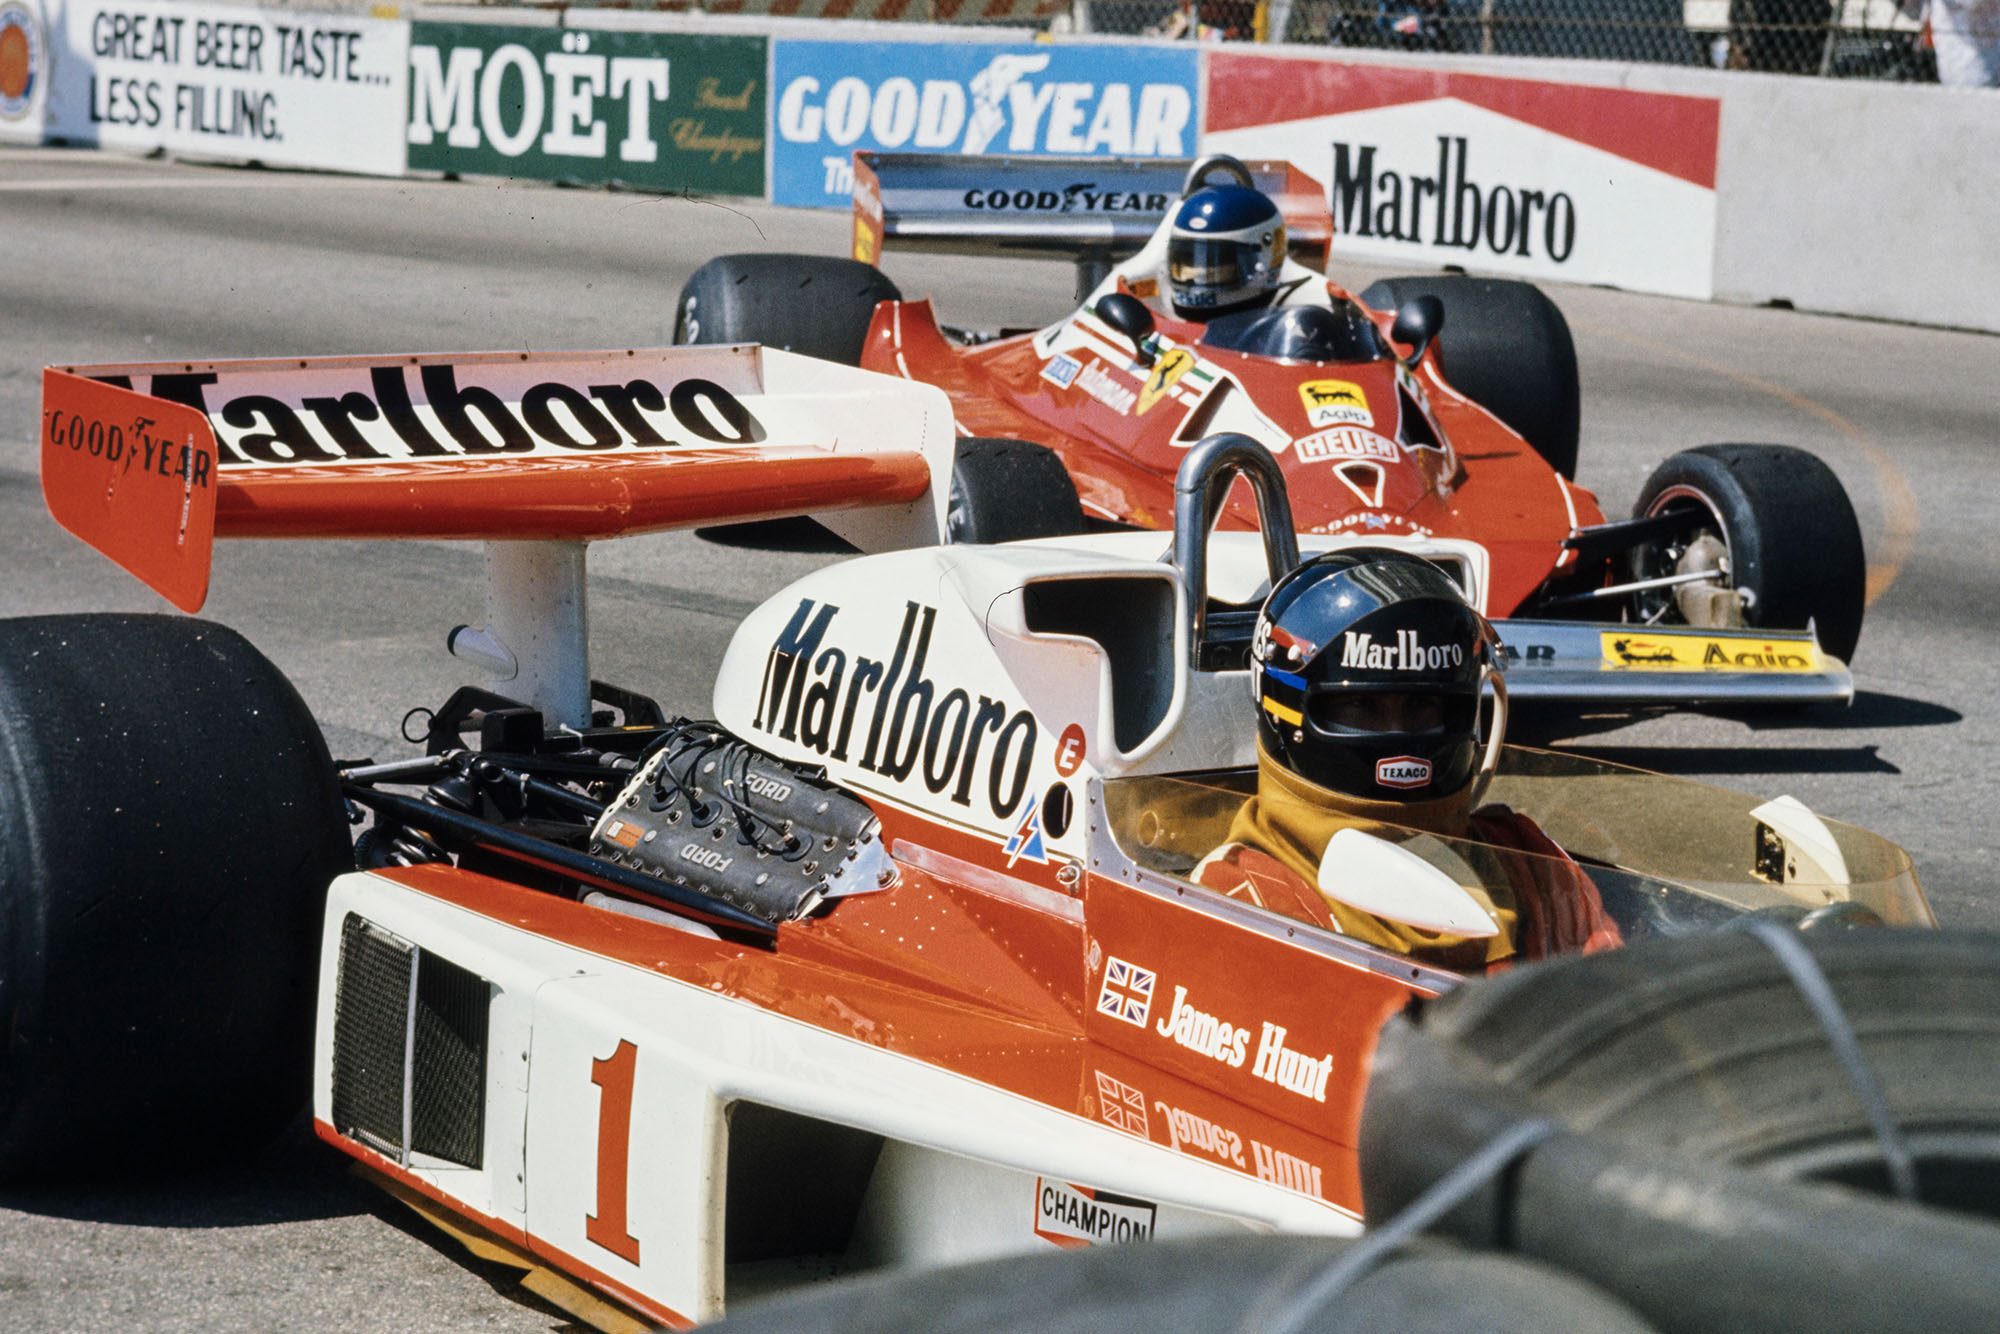 James Hunt (McLaren) finds himself buried in the barriers, United States Grand Prix West, Long Beach.